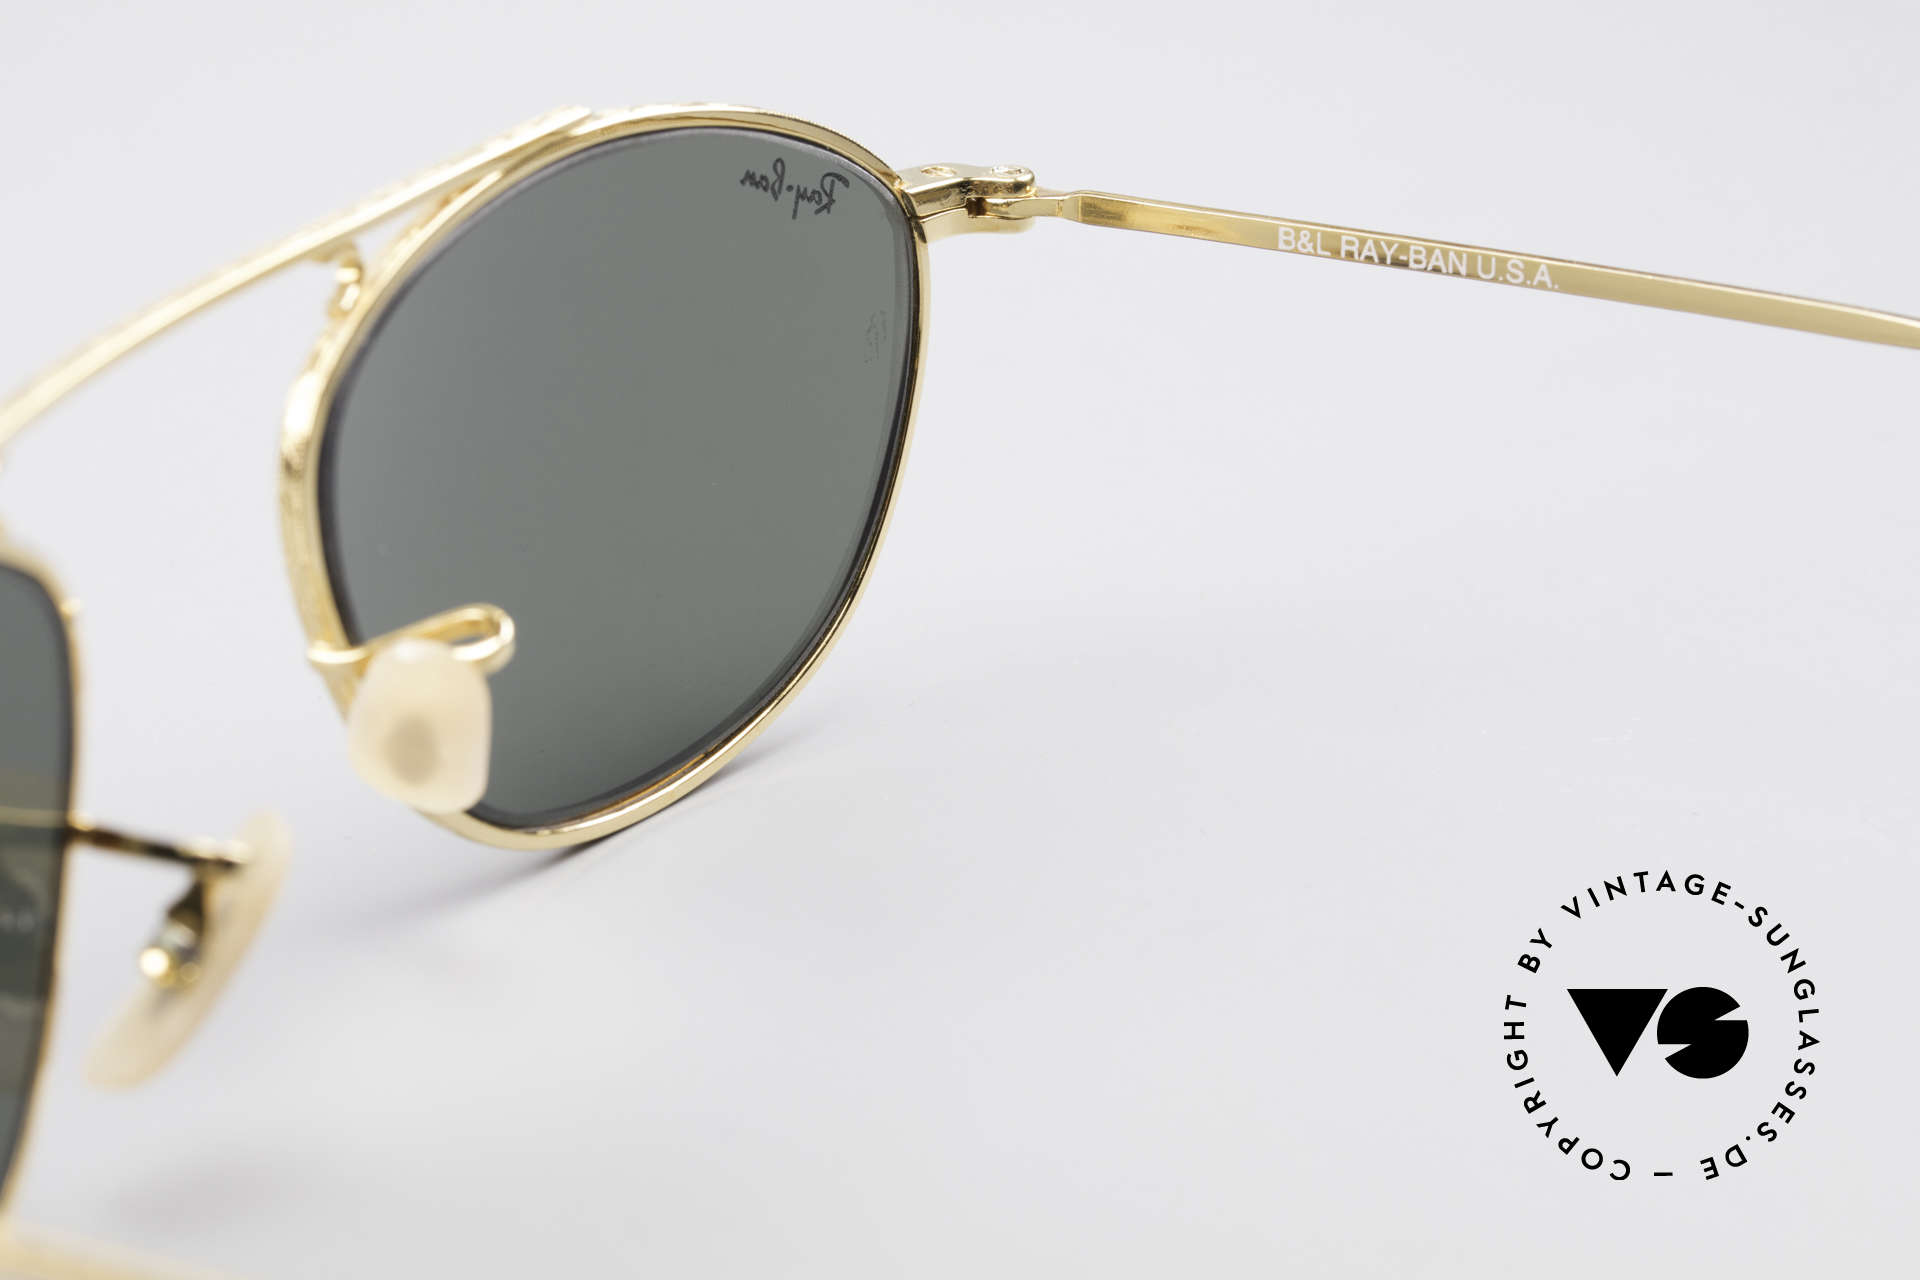 Ray Ban Modified Aviator Old USA Ray-Ban Sunglasses, orig. name: B&L Vintage Aviator, W2003, 49mm, G-15, Made for Men and Women